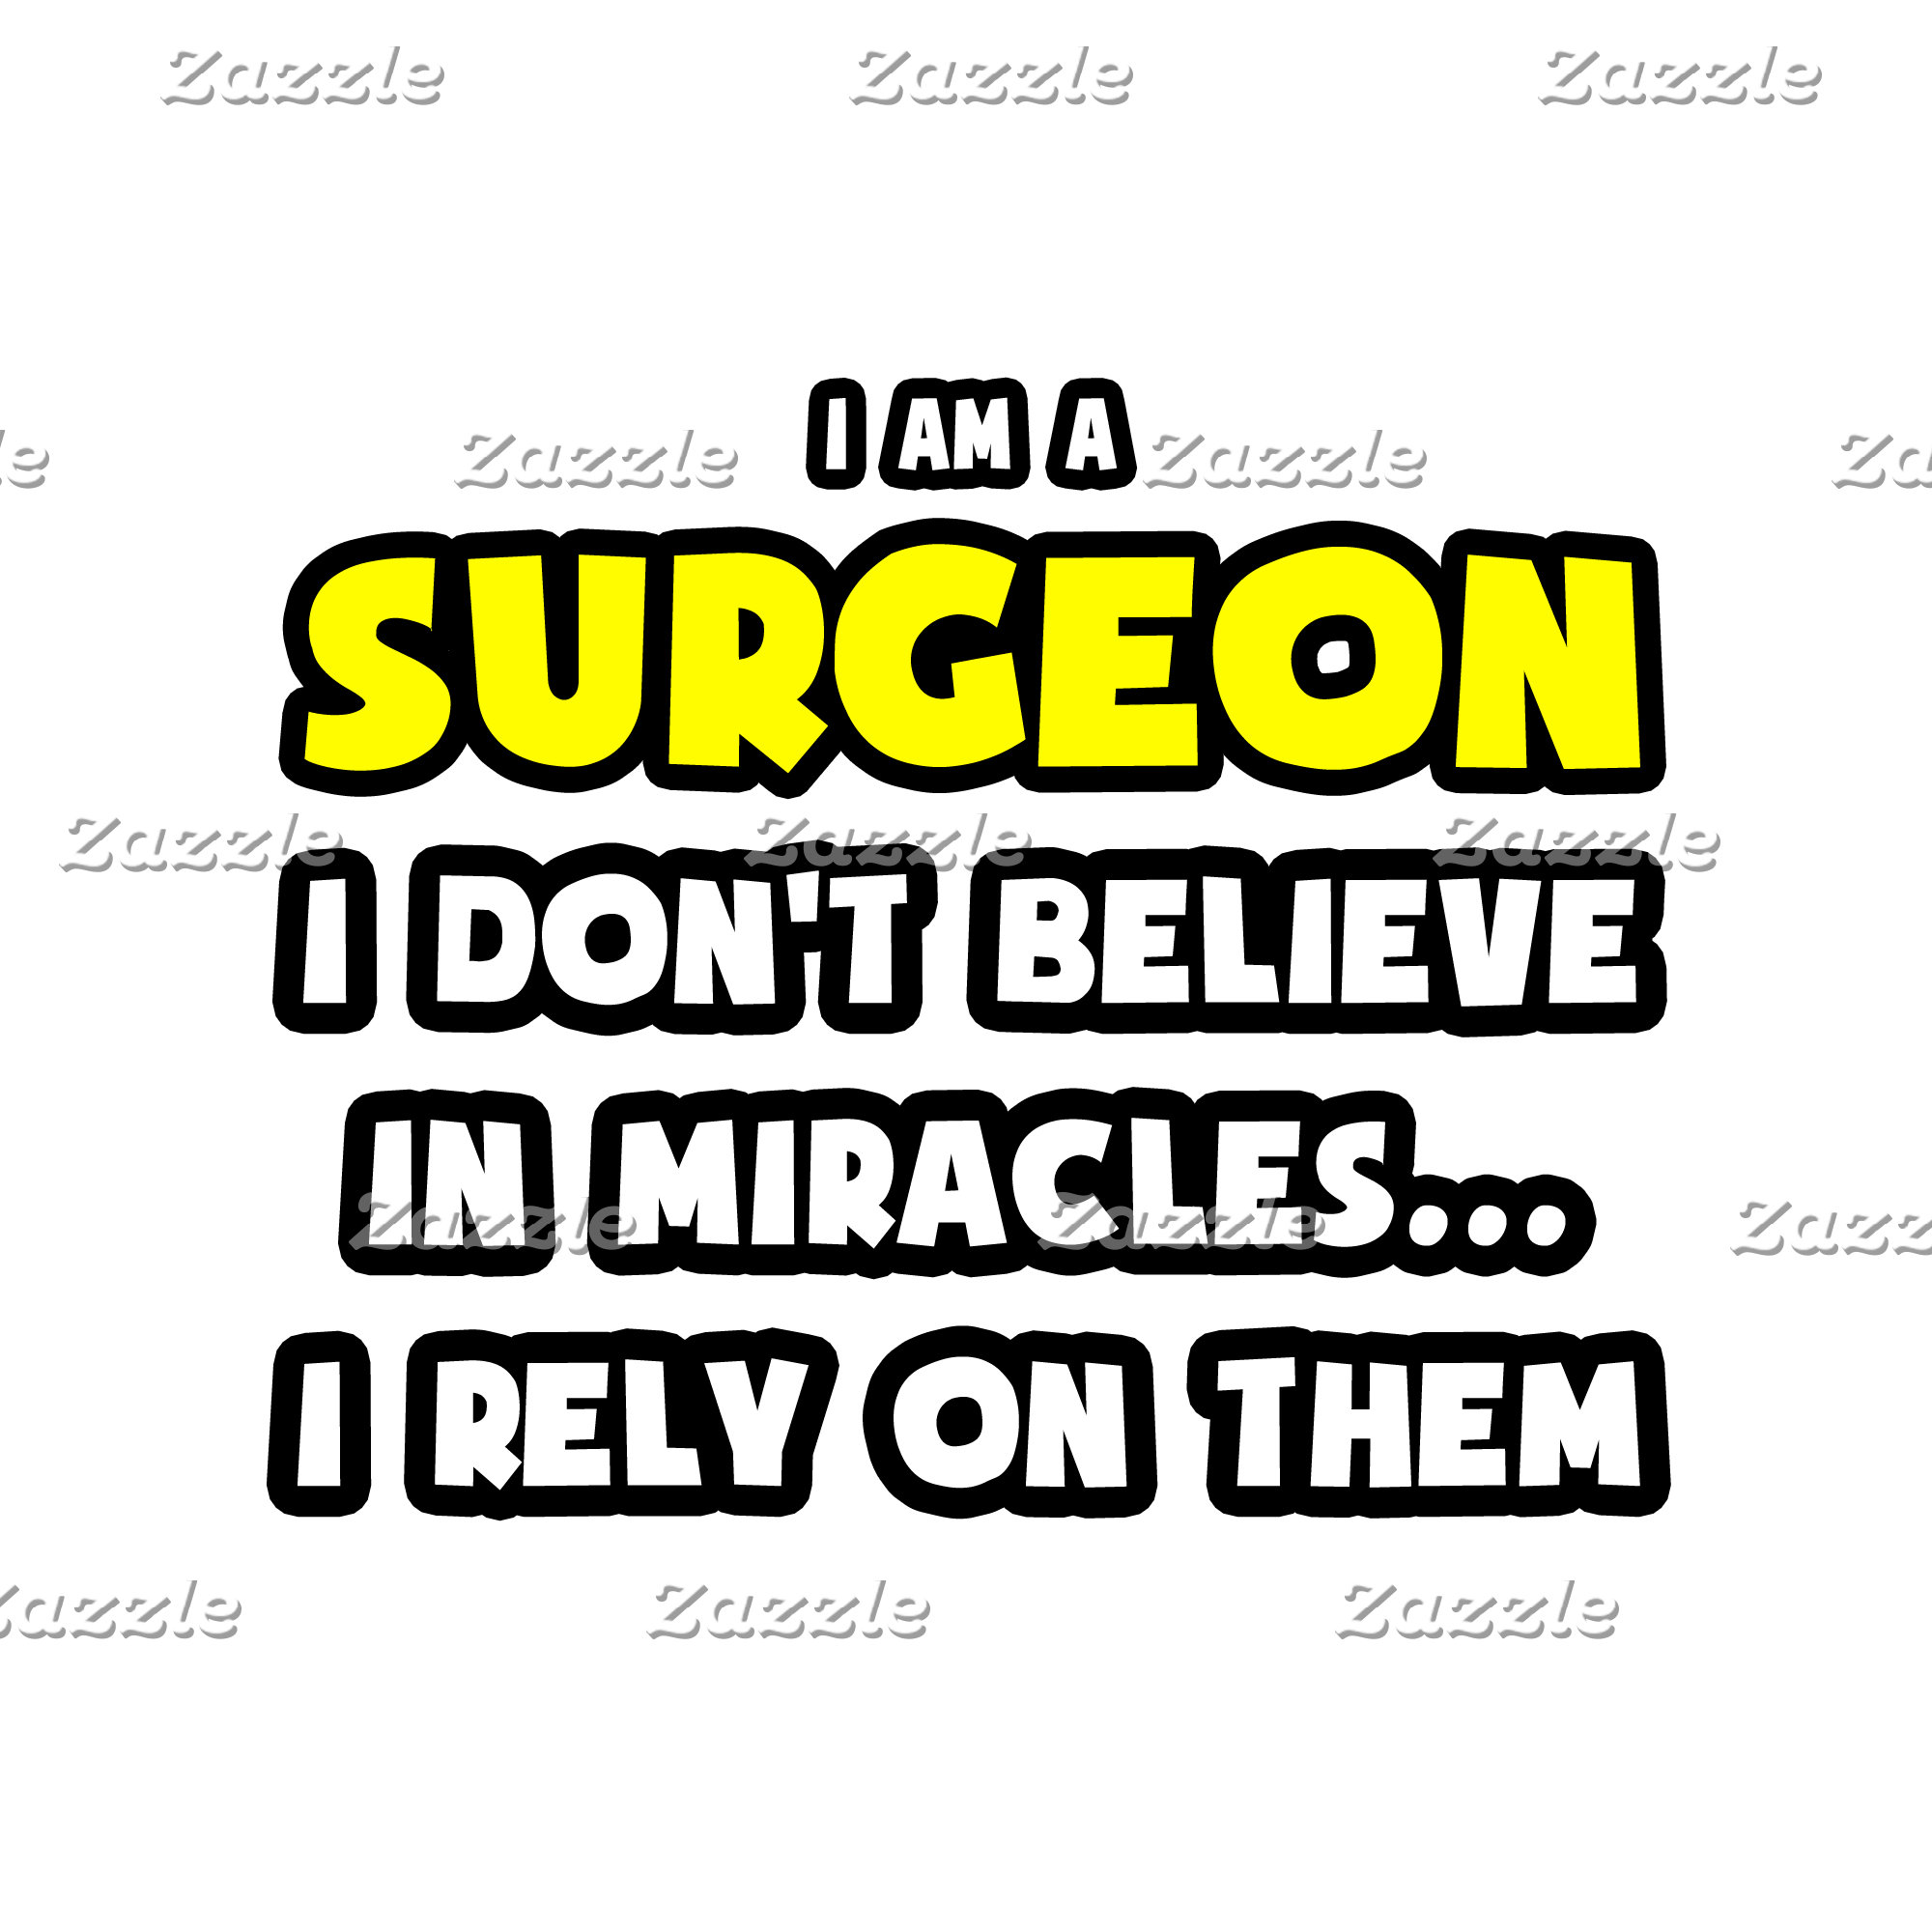 Miracles and Surgeons ... Funny